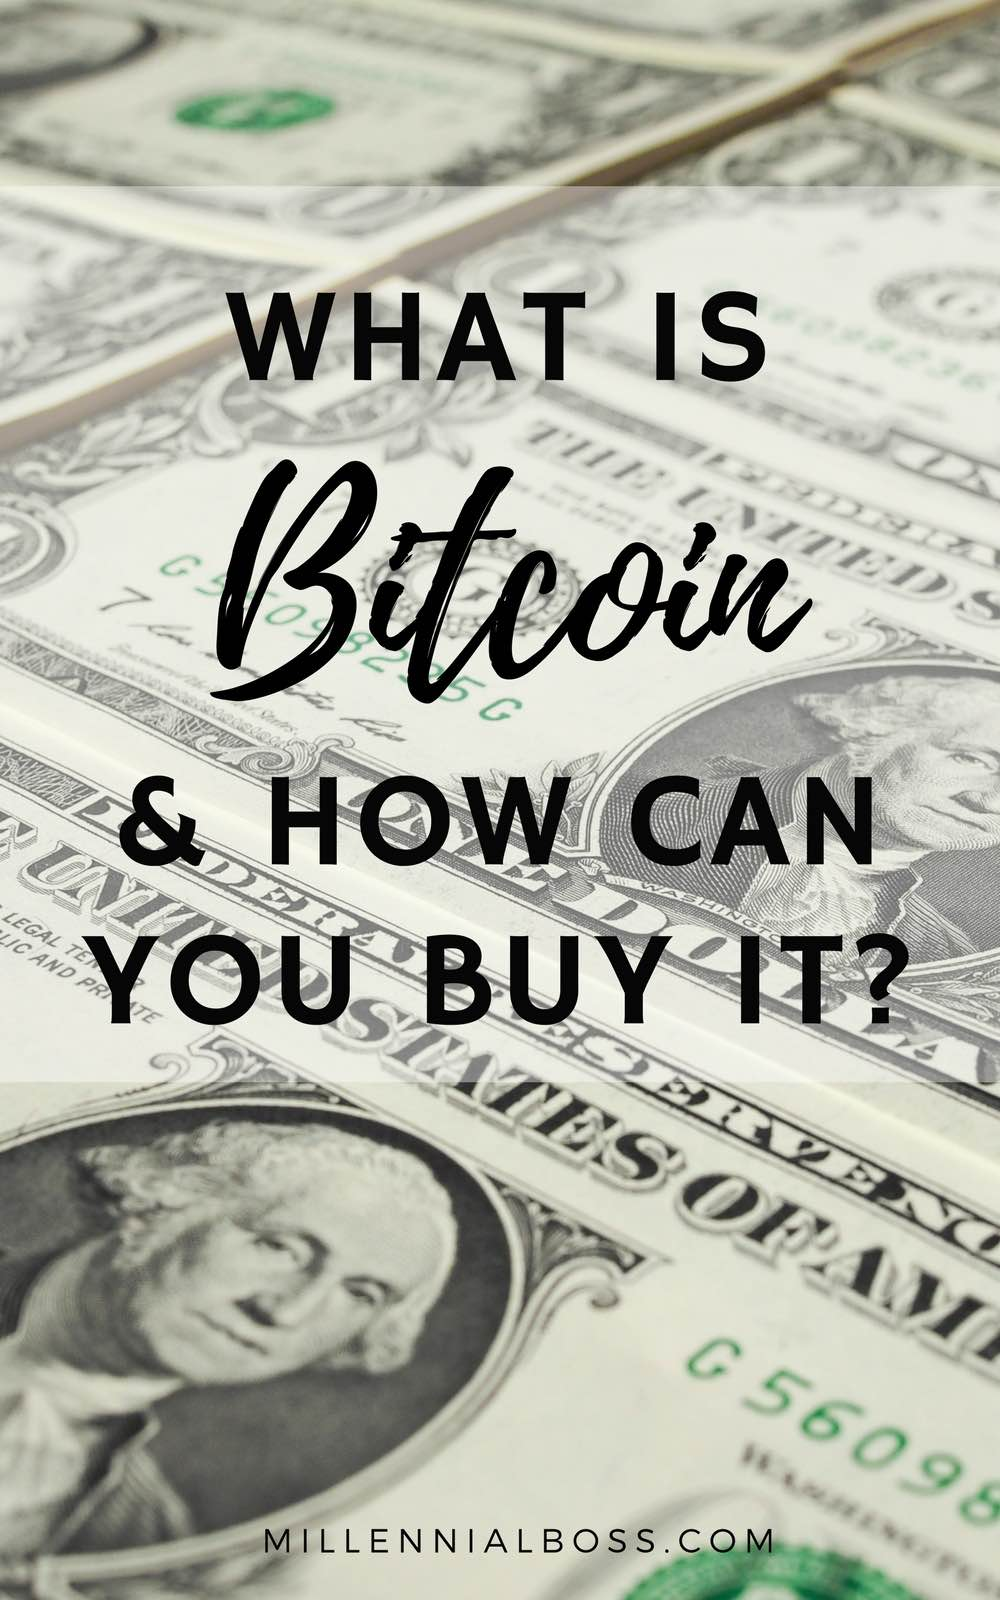 Why I'm buying bitcoin and recommend you buy bitcoin too! Plus the differences in cryptocurrency and bitcoin investing